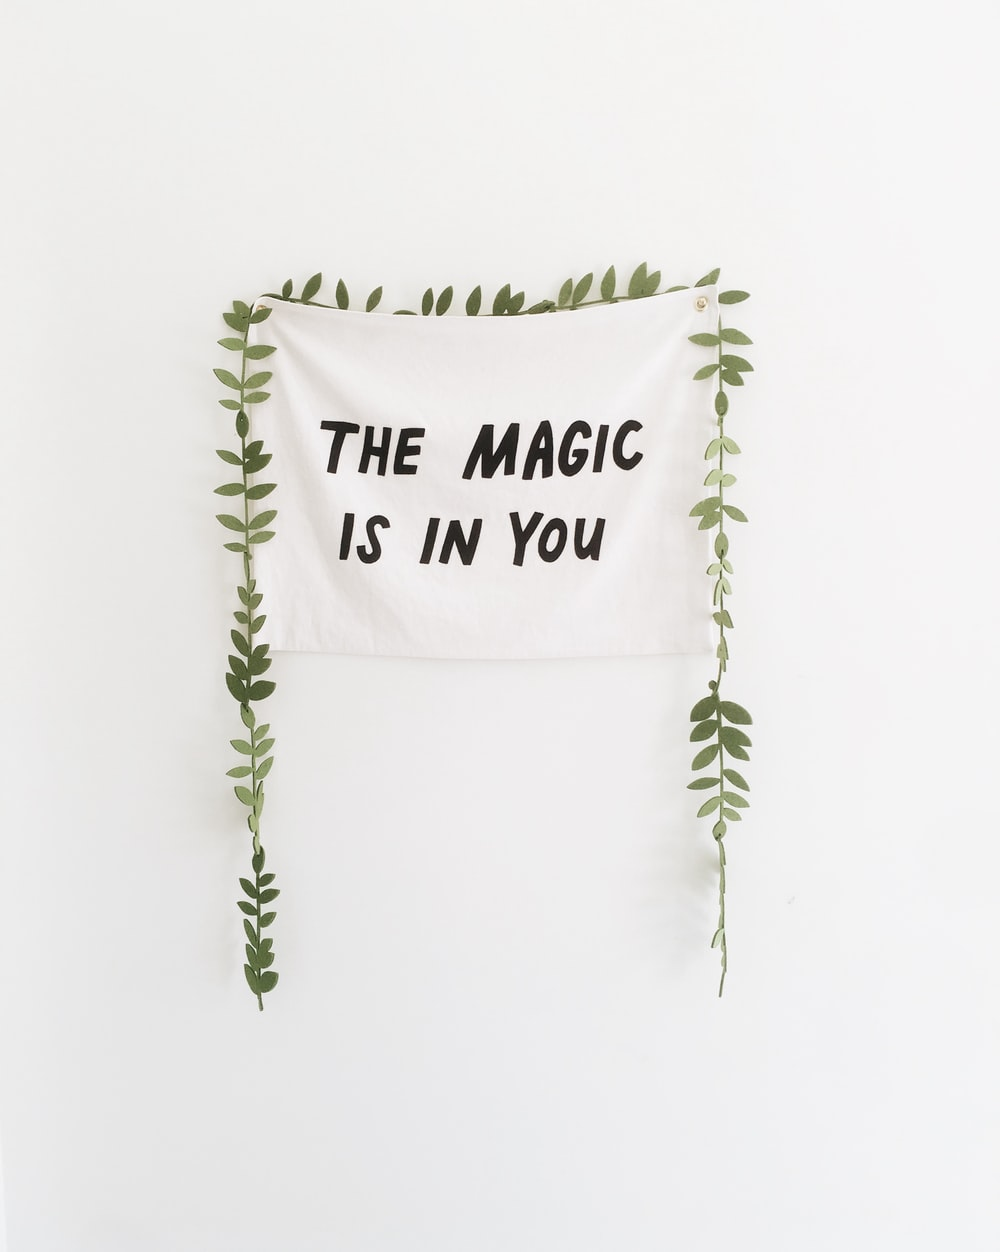 the magic is in you wall decor